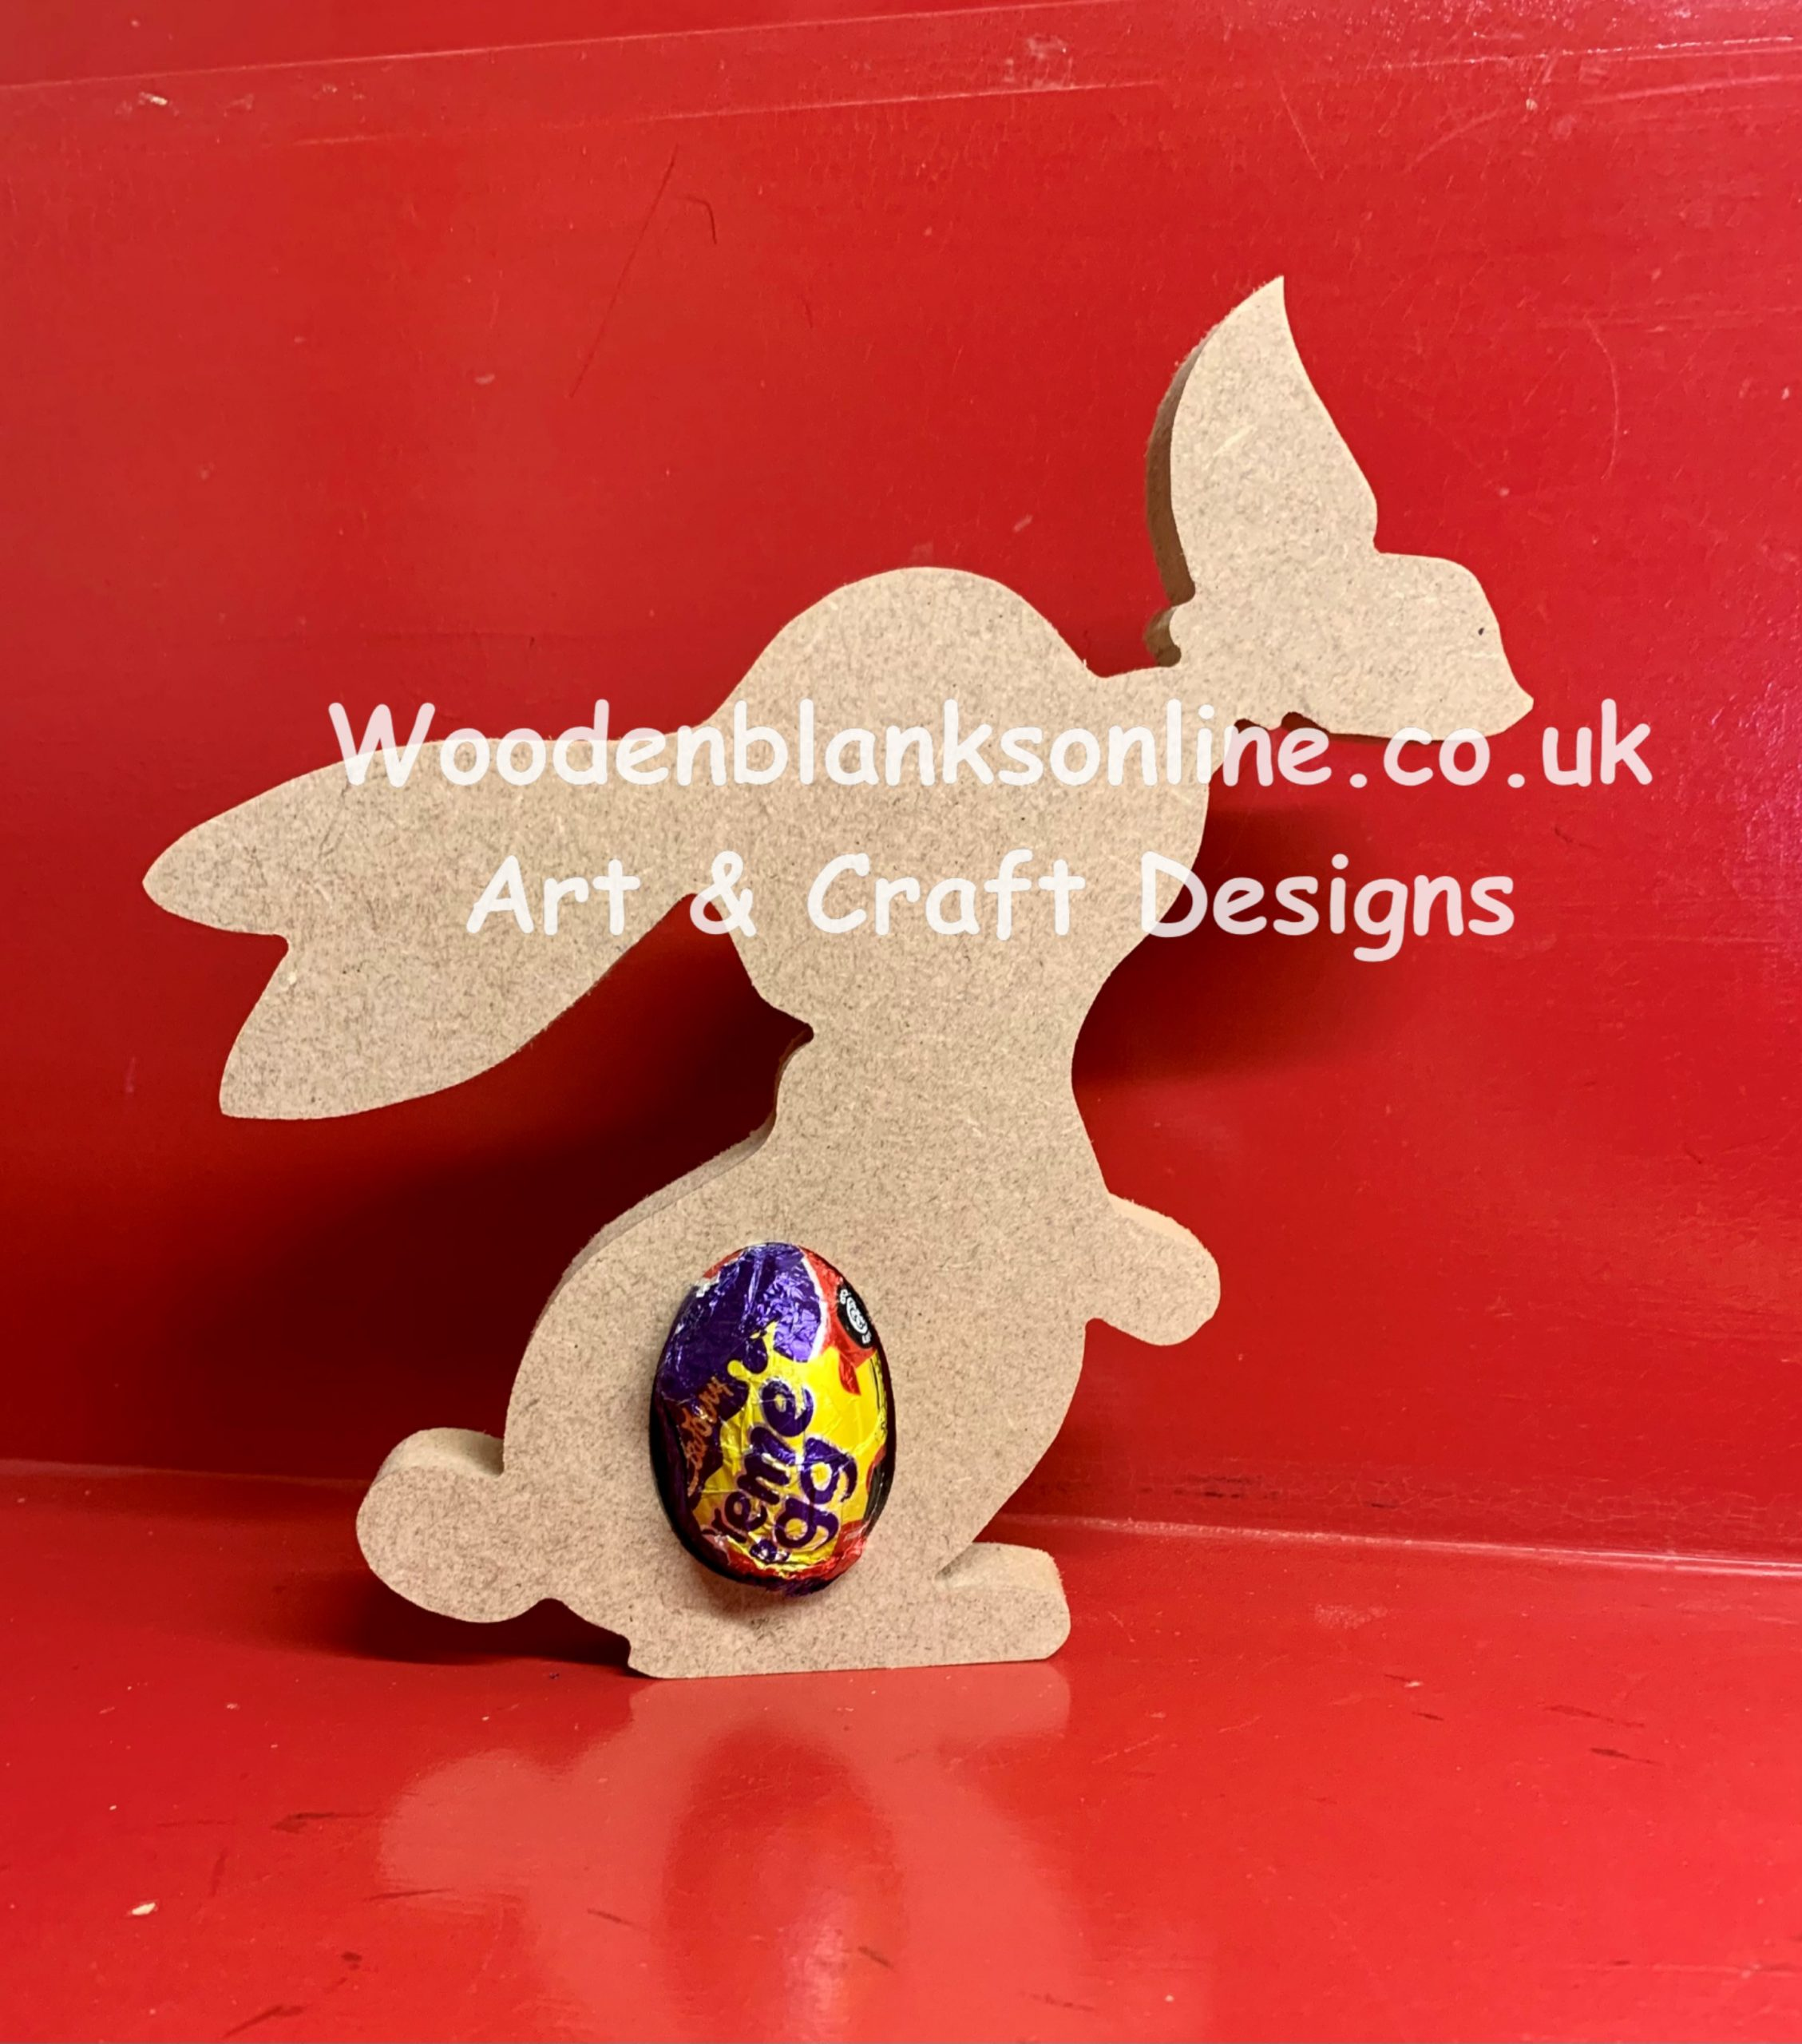 Butterfly bunny creme egg holder